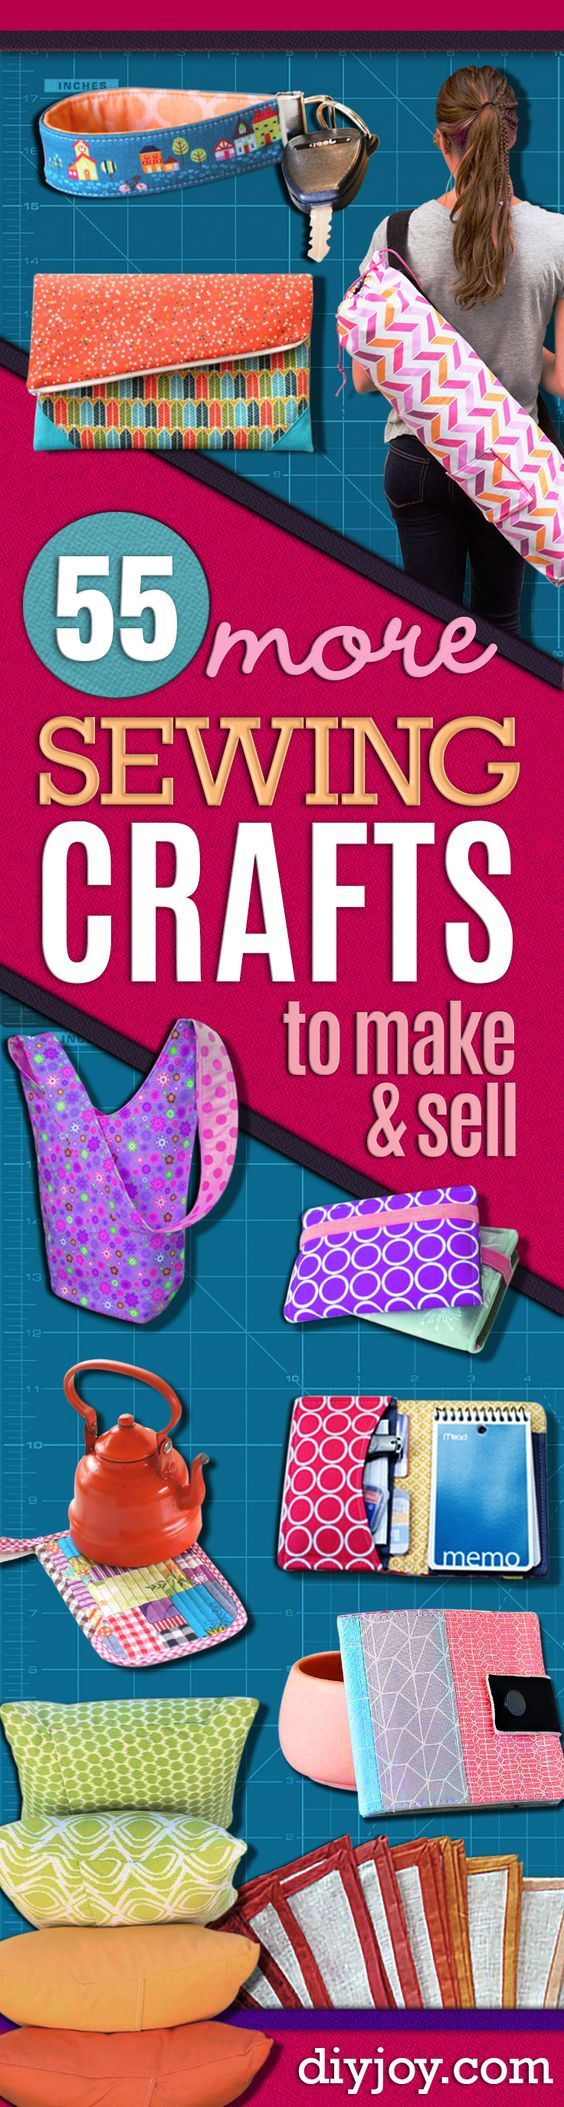 55 more sewing crafts to make and sell craft business